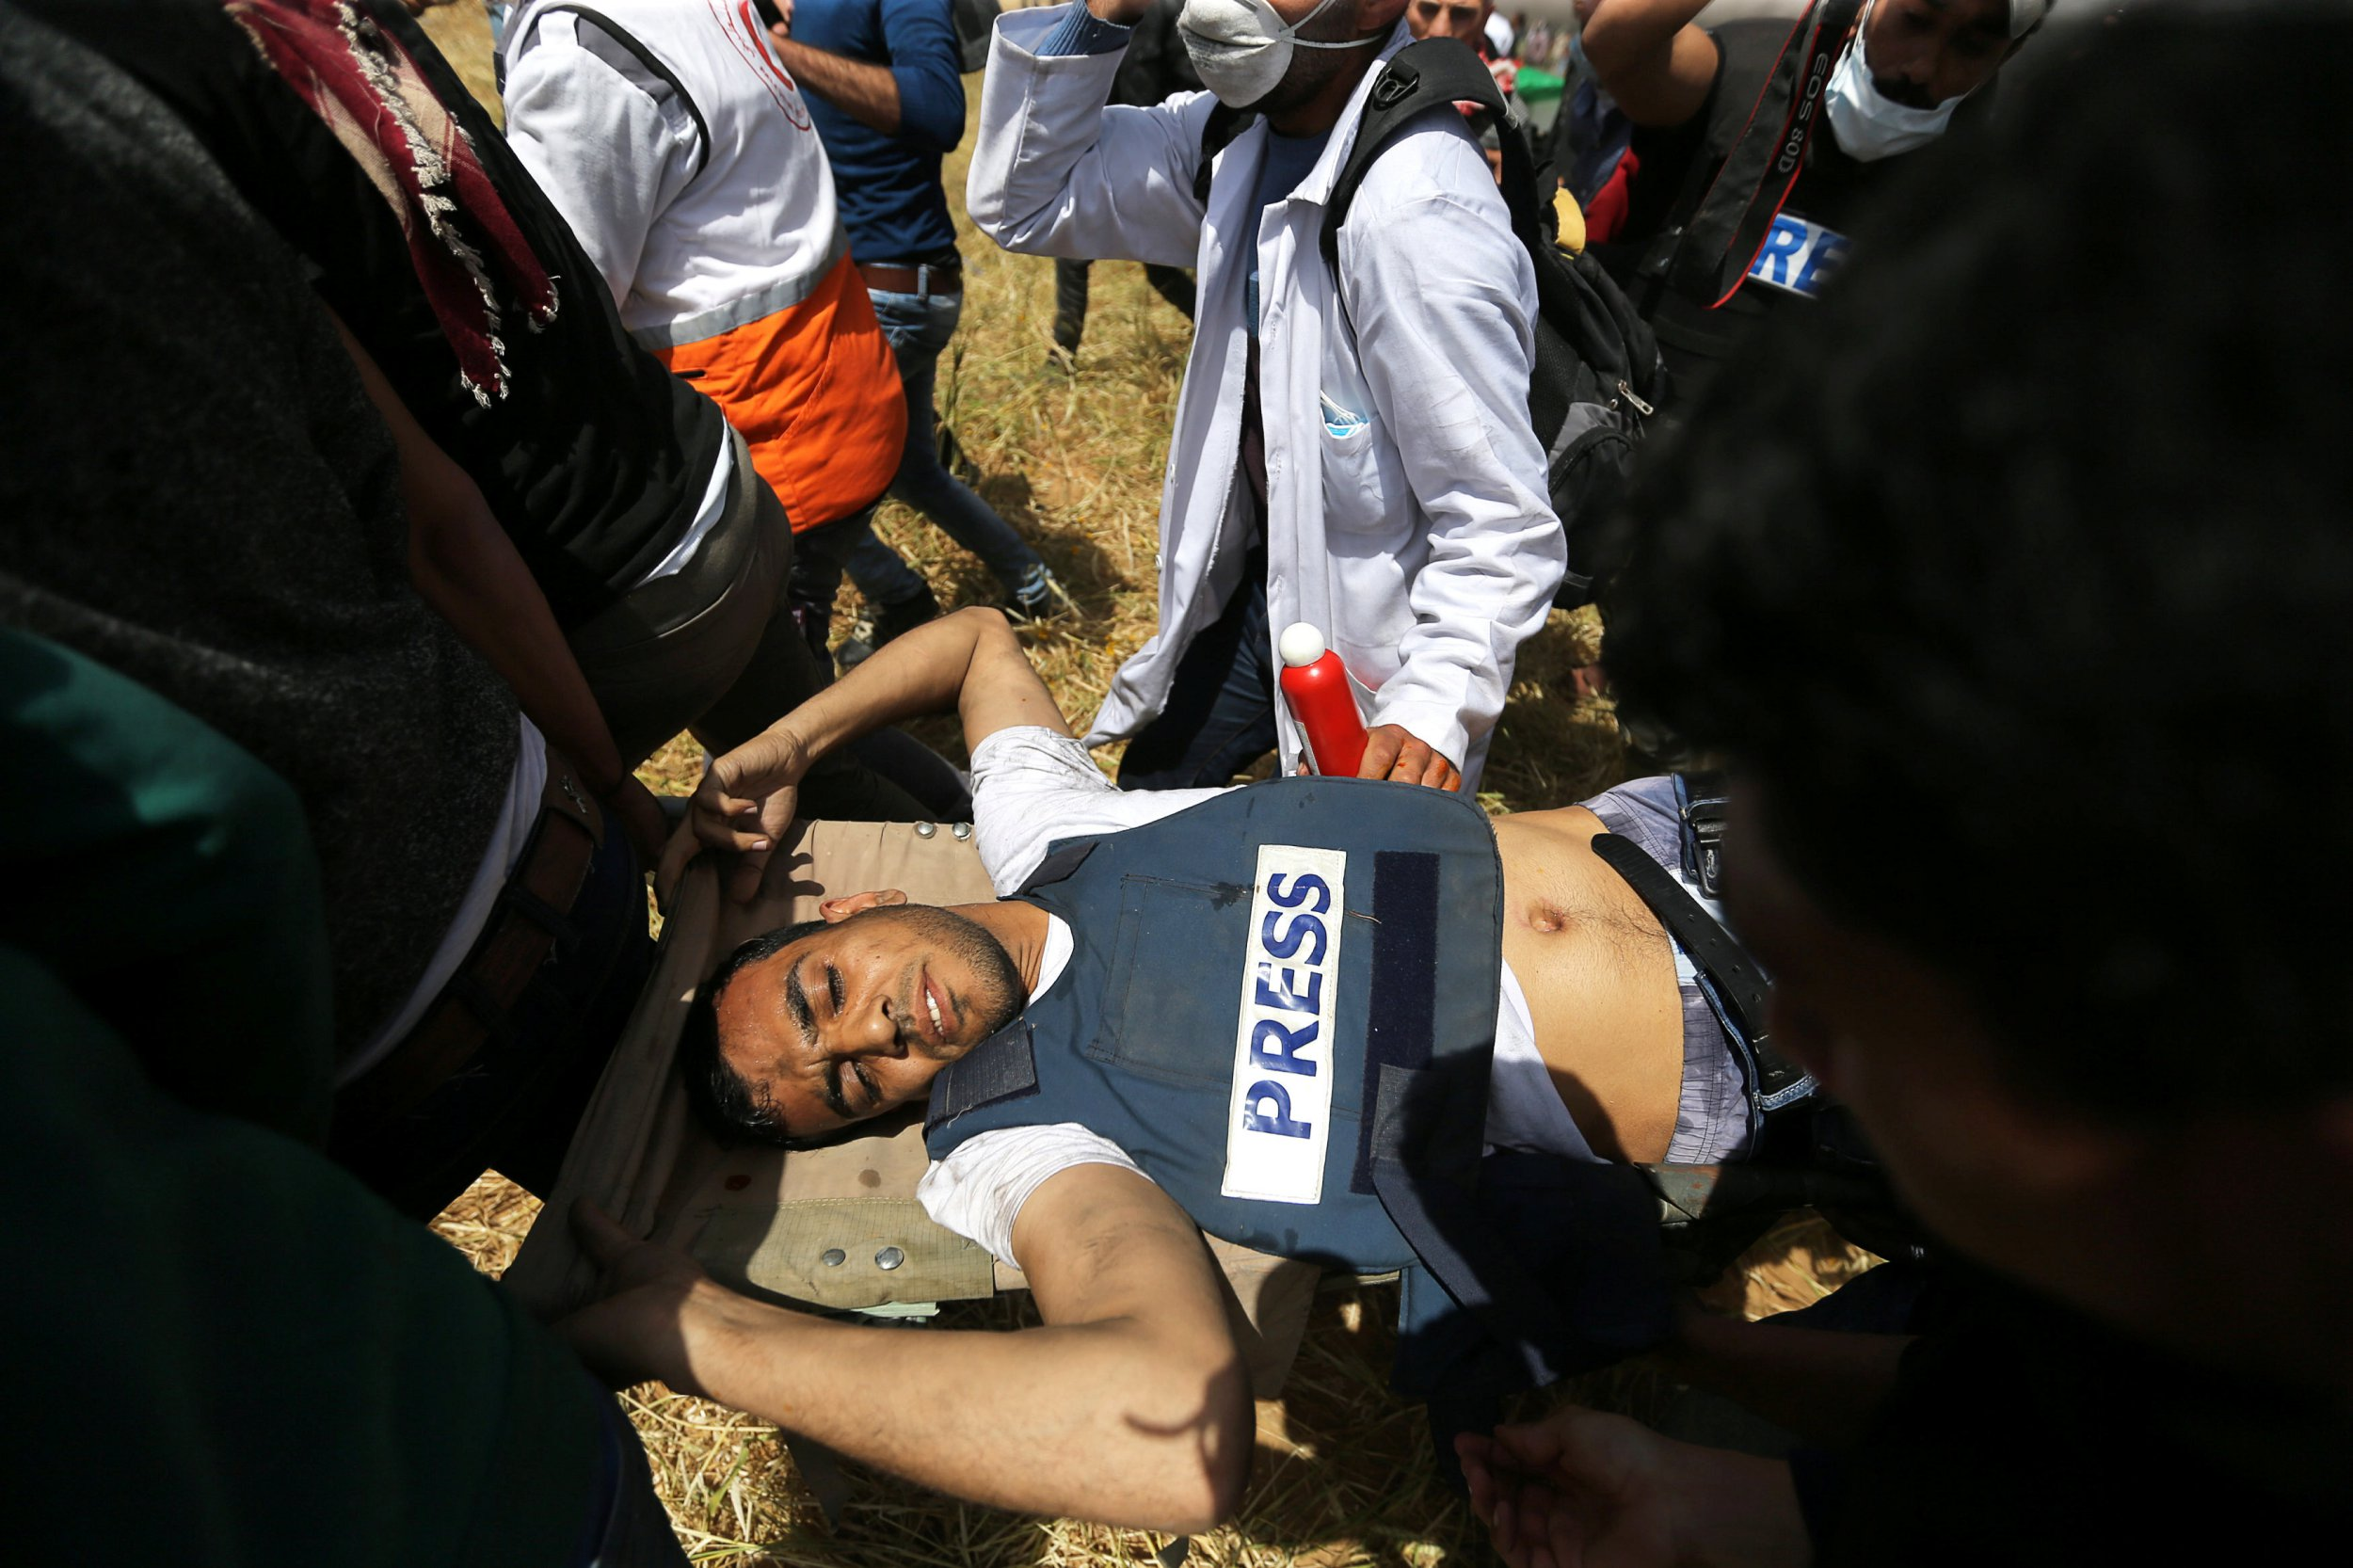 Palestinian journalist shot dead by Israeli sniper while wearing press vest